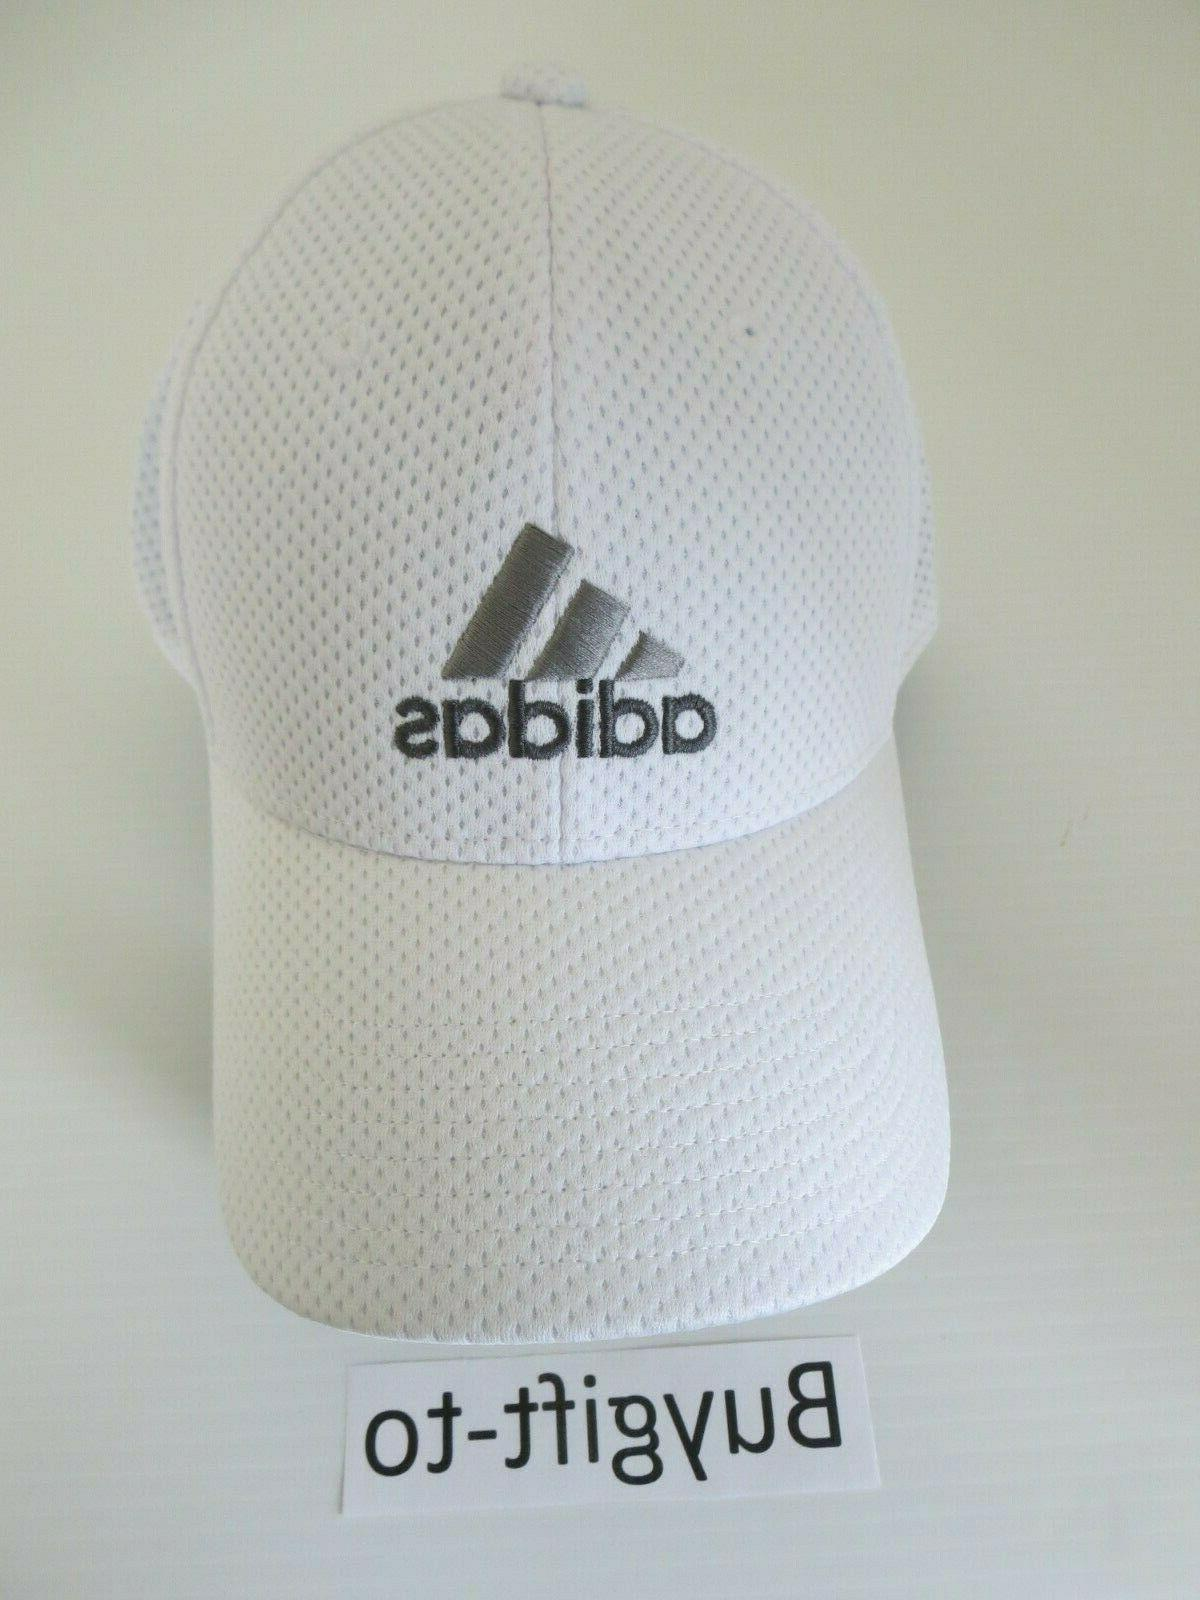 New Adidas Nothing Hat S/M